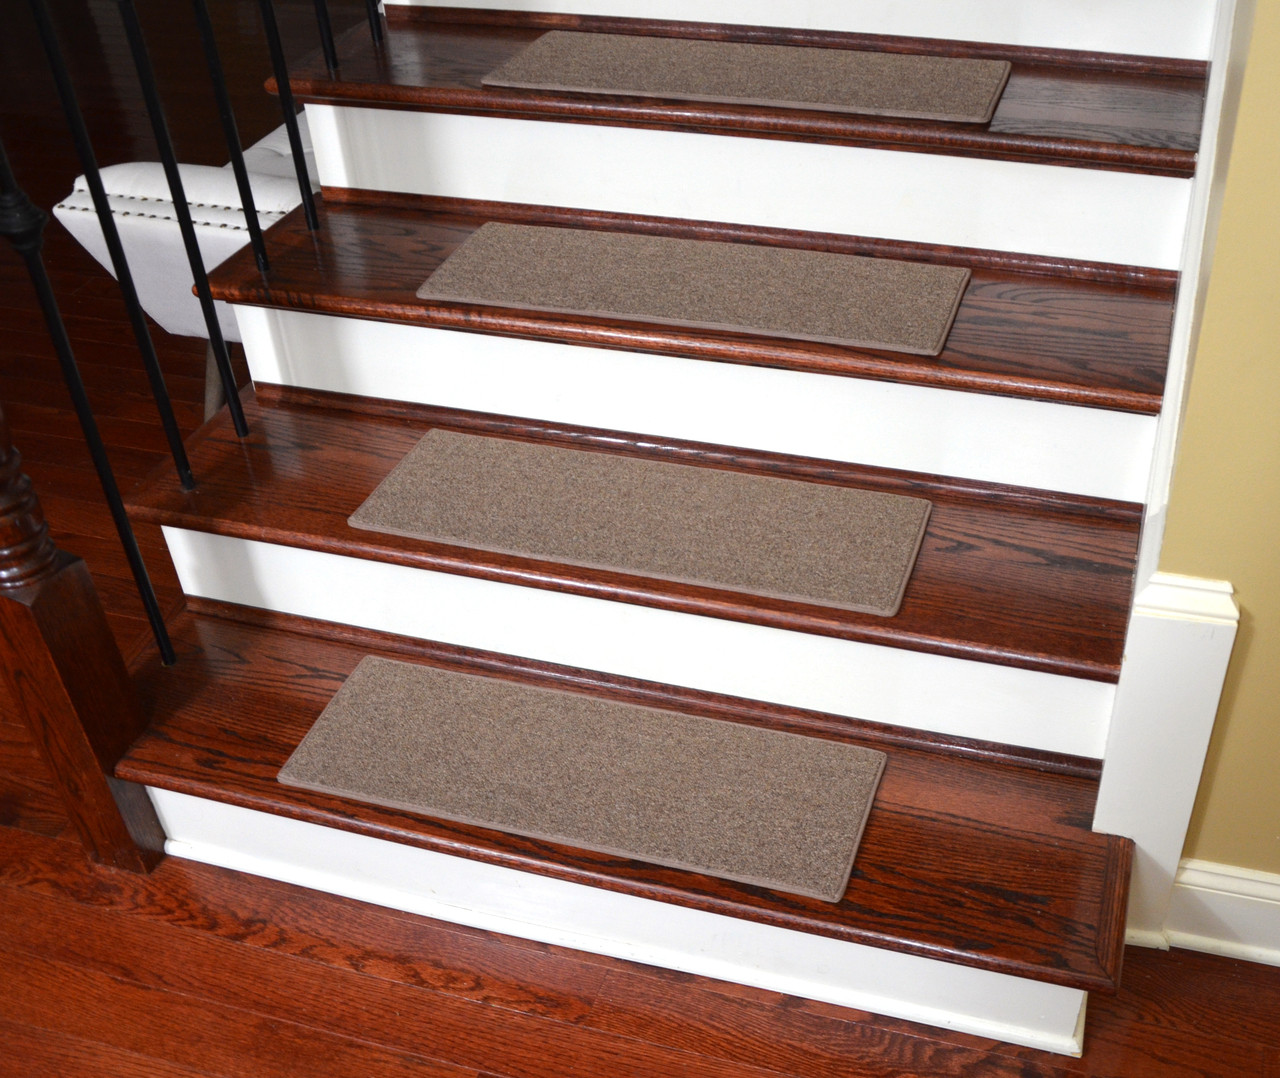 Diy Stair Treads Out Of Flor Tiles: Non-Slip, Tape-Free Carpet Stair Treads For Dogs (Set Of 15